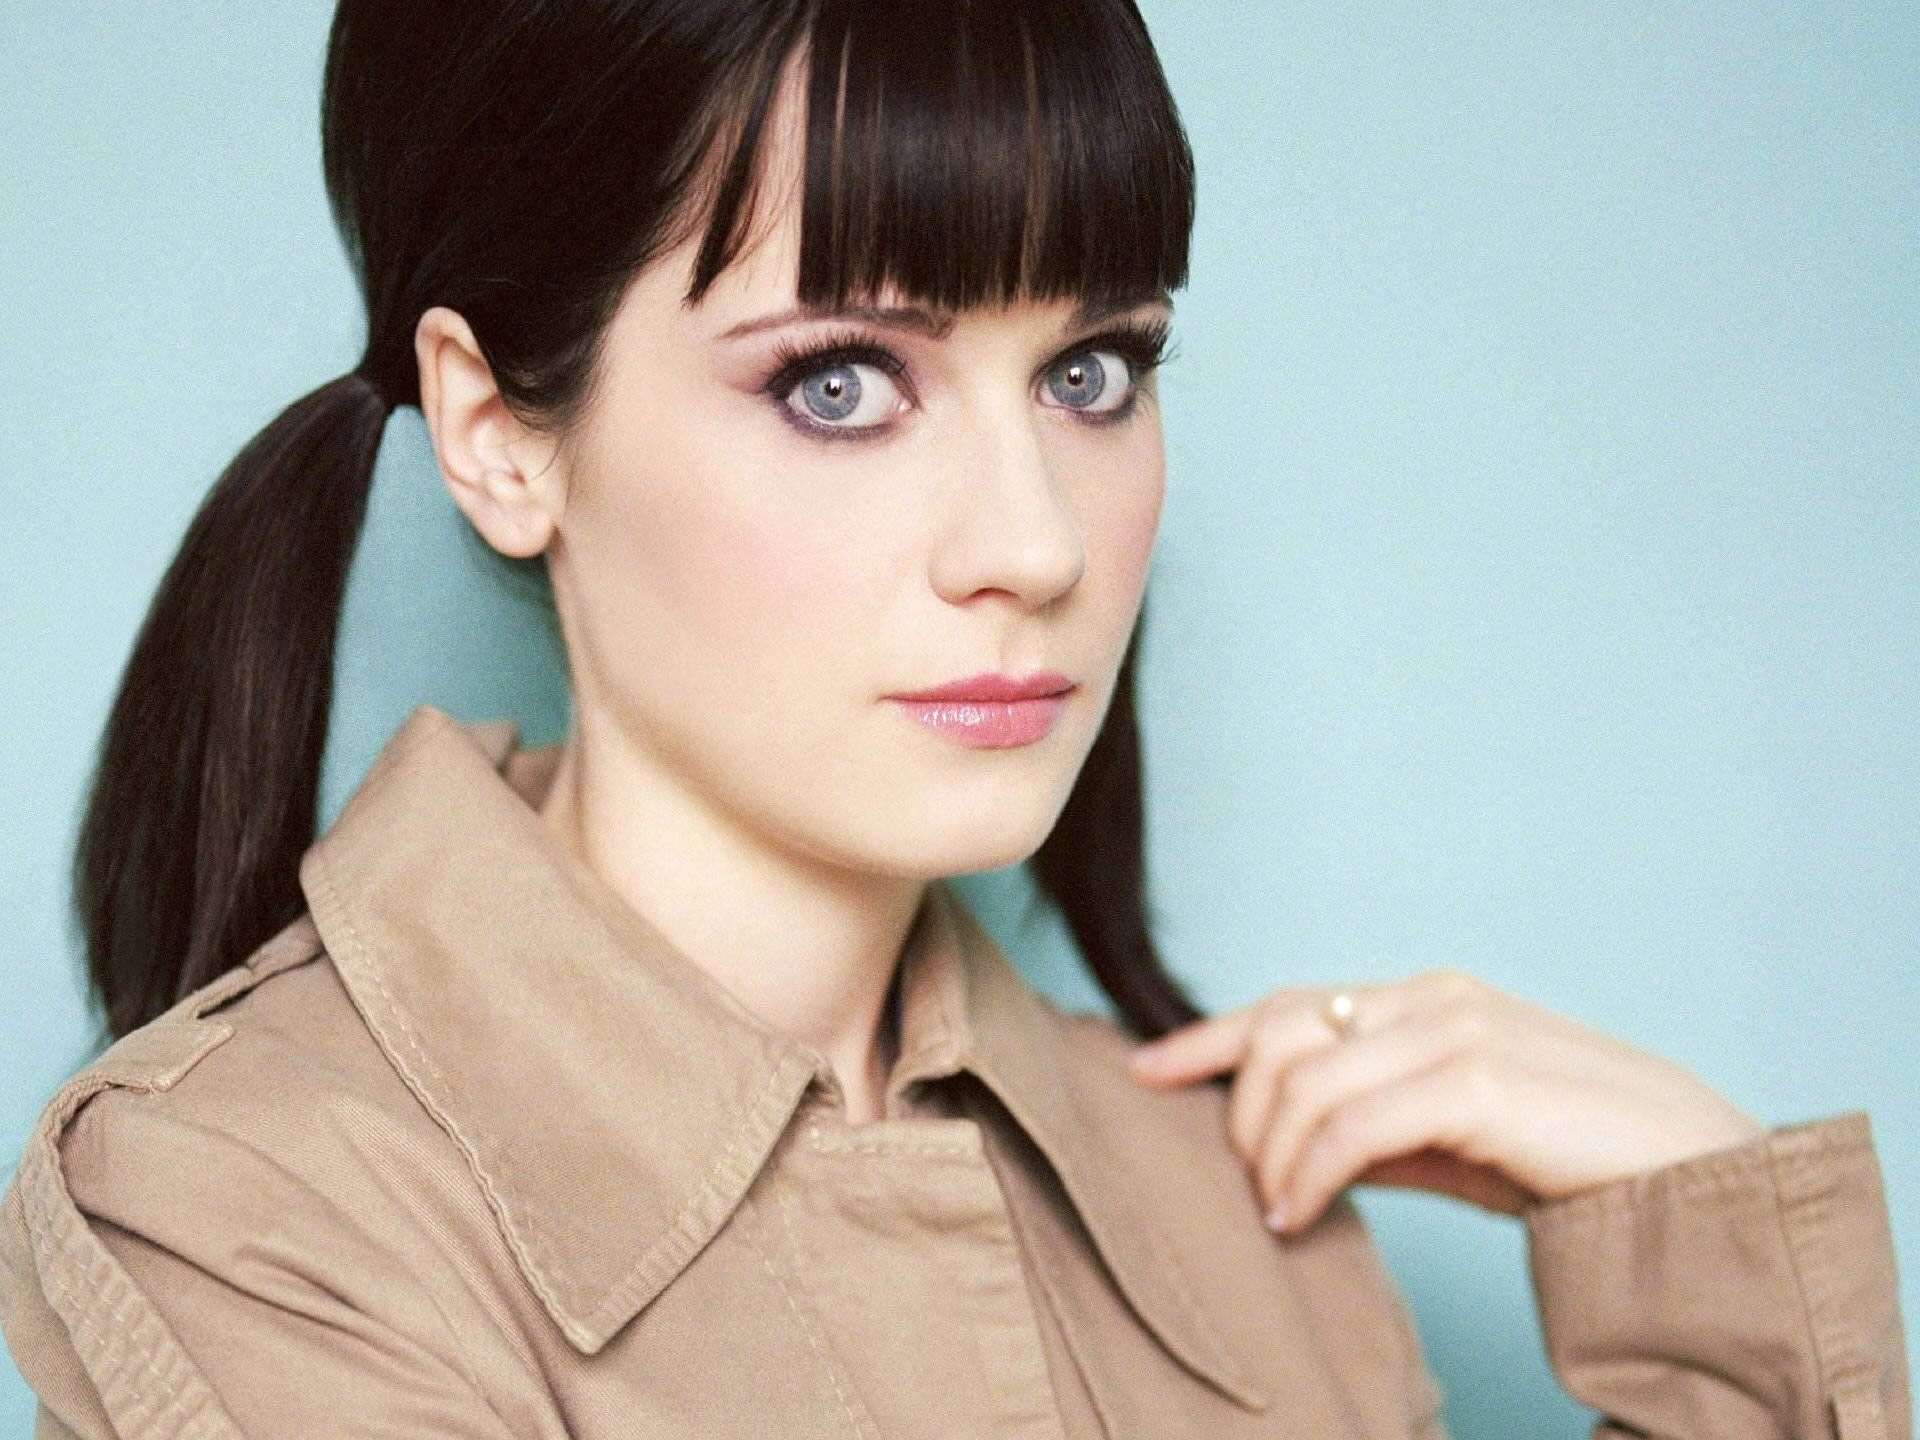 Berühmtheiten - Zooey Deschanel  Wallpaper